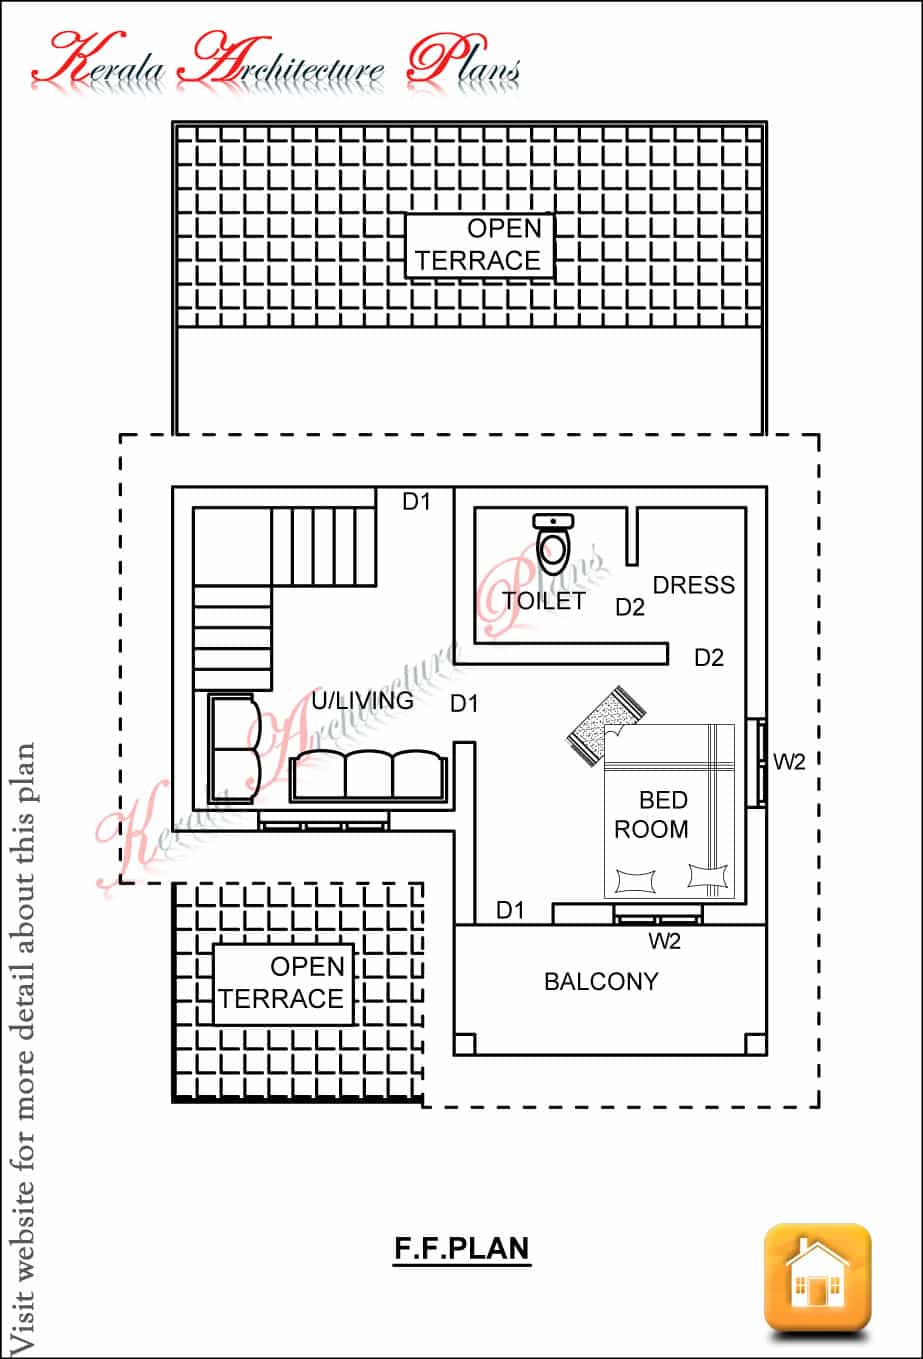 4 Bedroom House Plans Open Floor Simple Square Feet